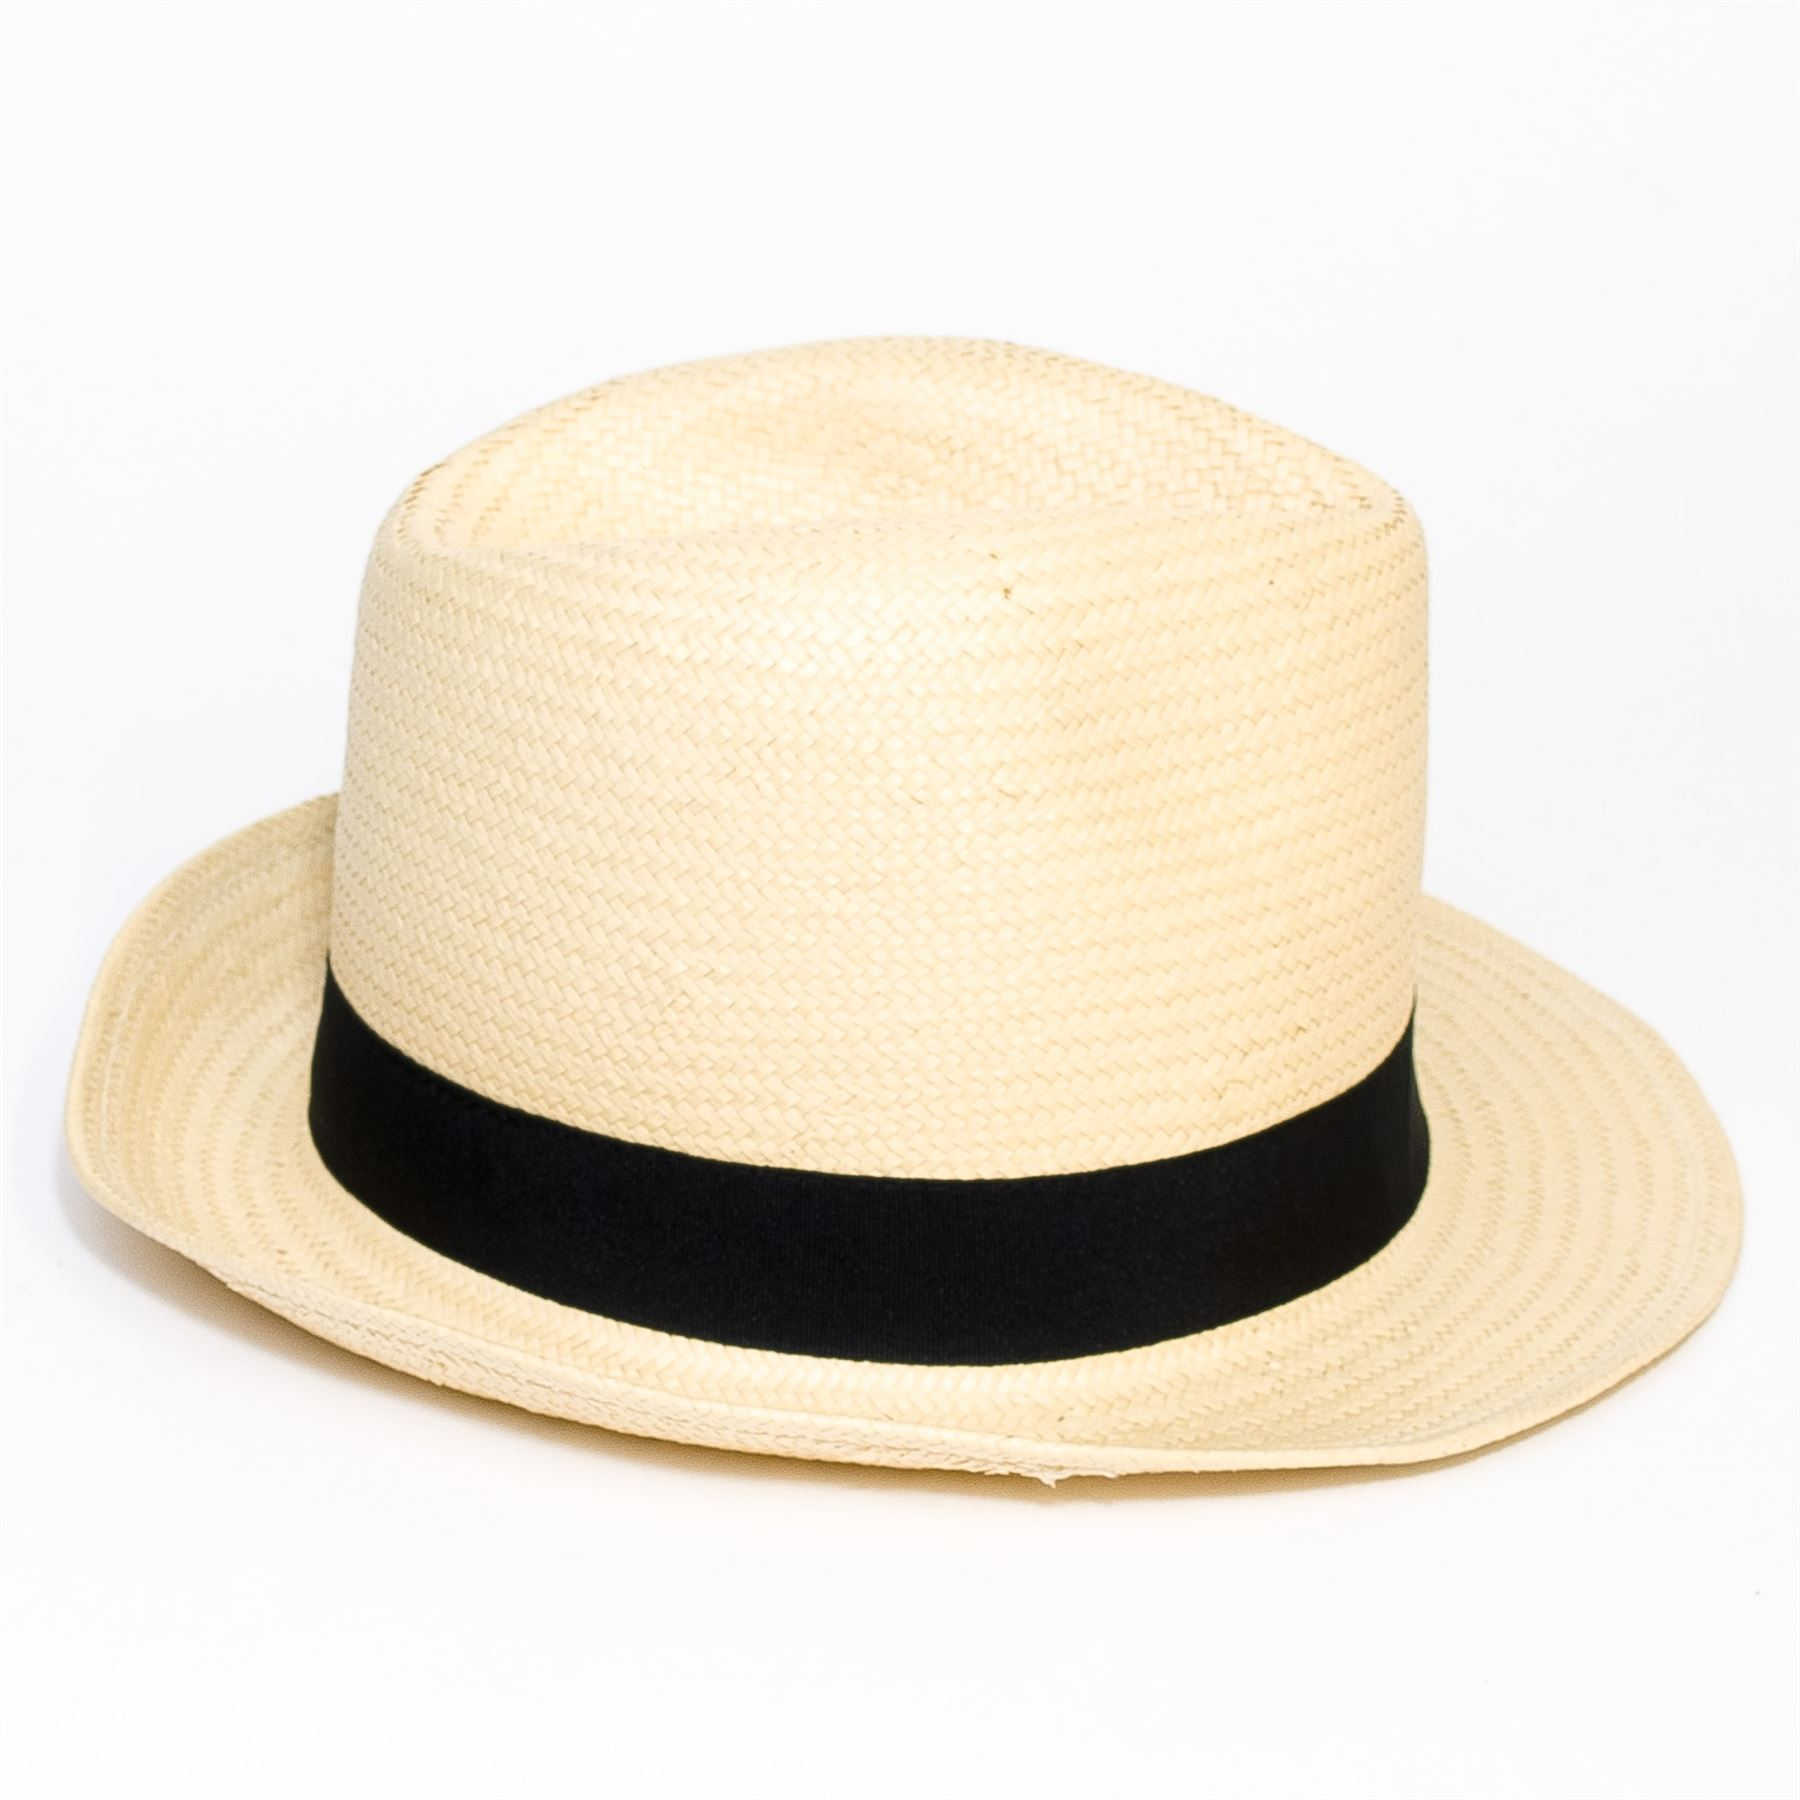 Woven-Straw-Style-Beige-Trilby-Hat thumbnail 7